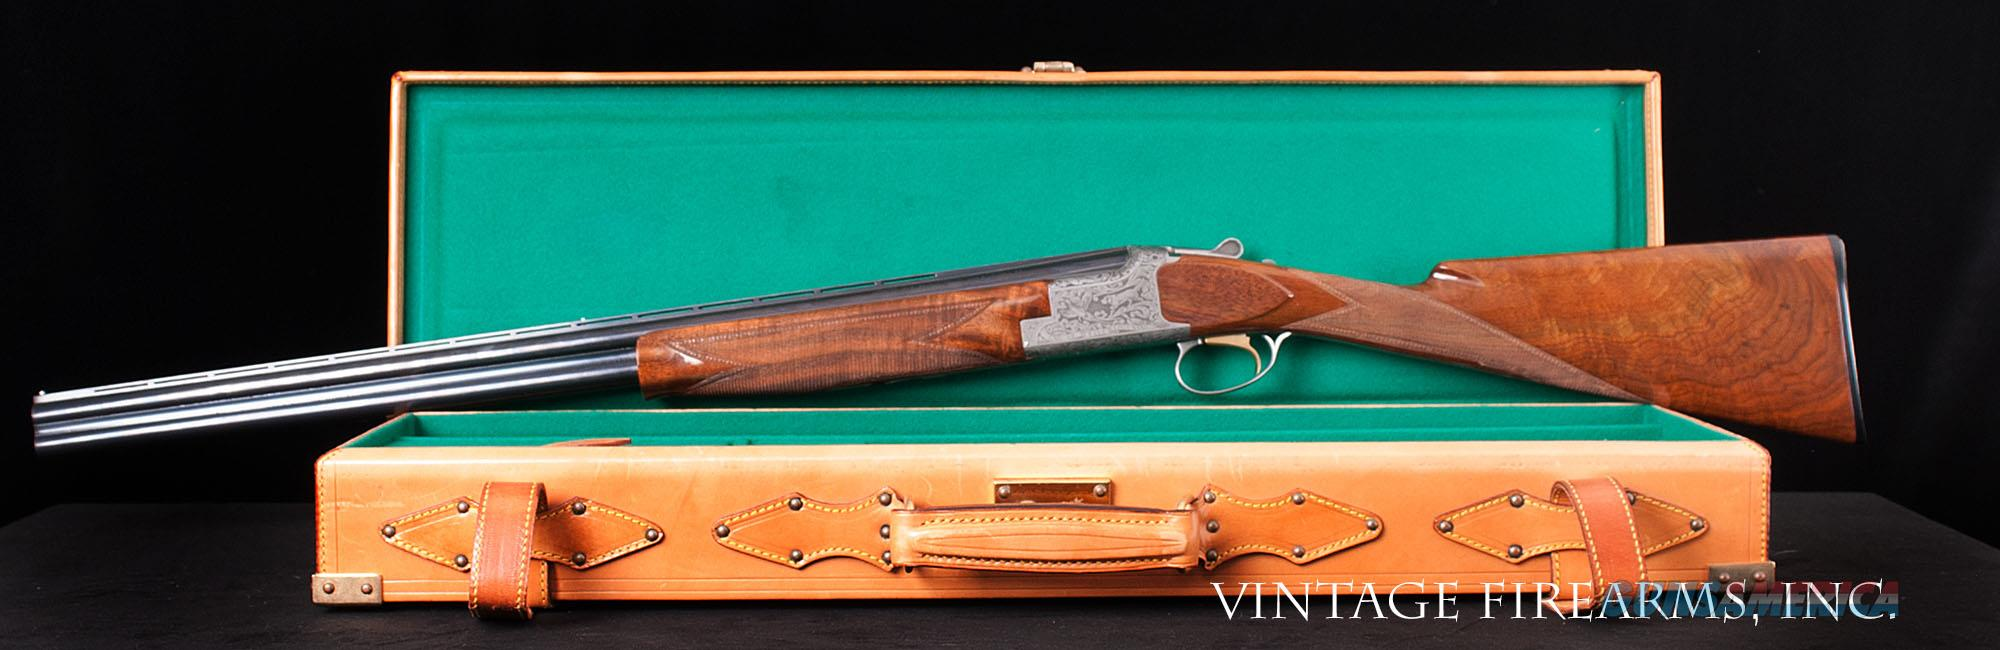 Browning Superposed Classic 20 Gauge – SUPERLIGHT, NEW, LEATHER CASE, 6LBS., 1 OF 2500   Guns > Shotguns > Browning Shotguns > Over Unders > Belgian Manufacture